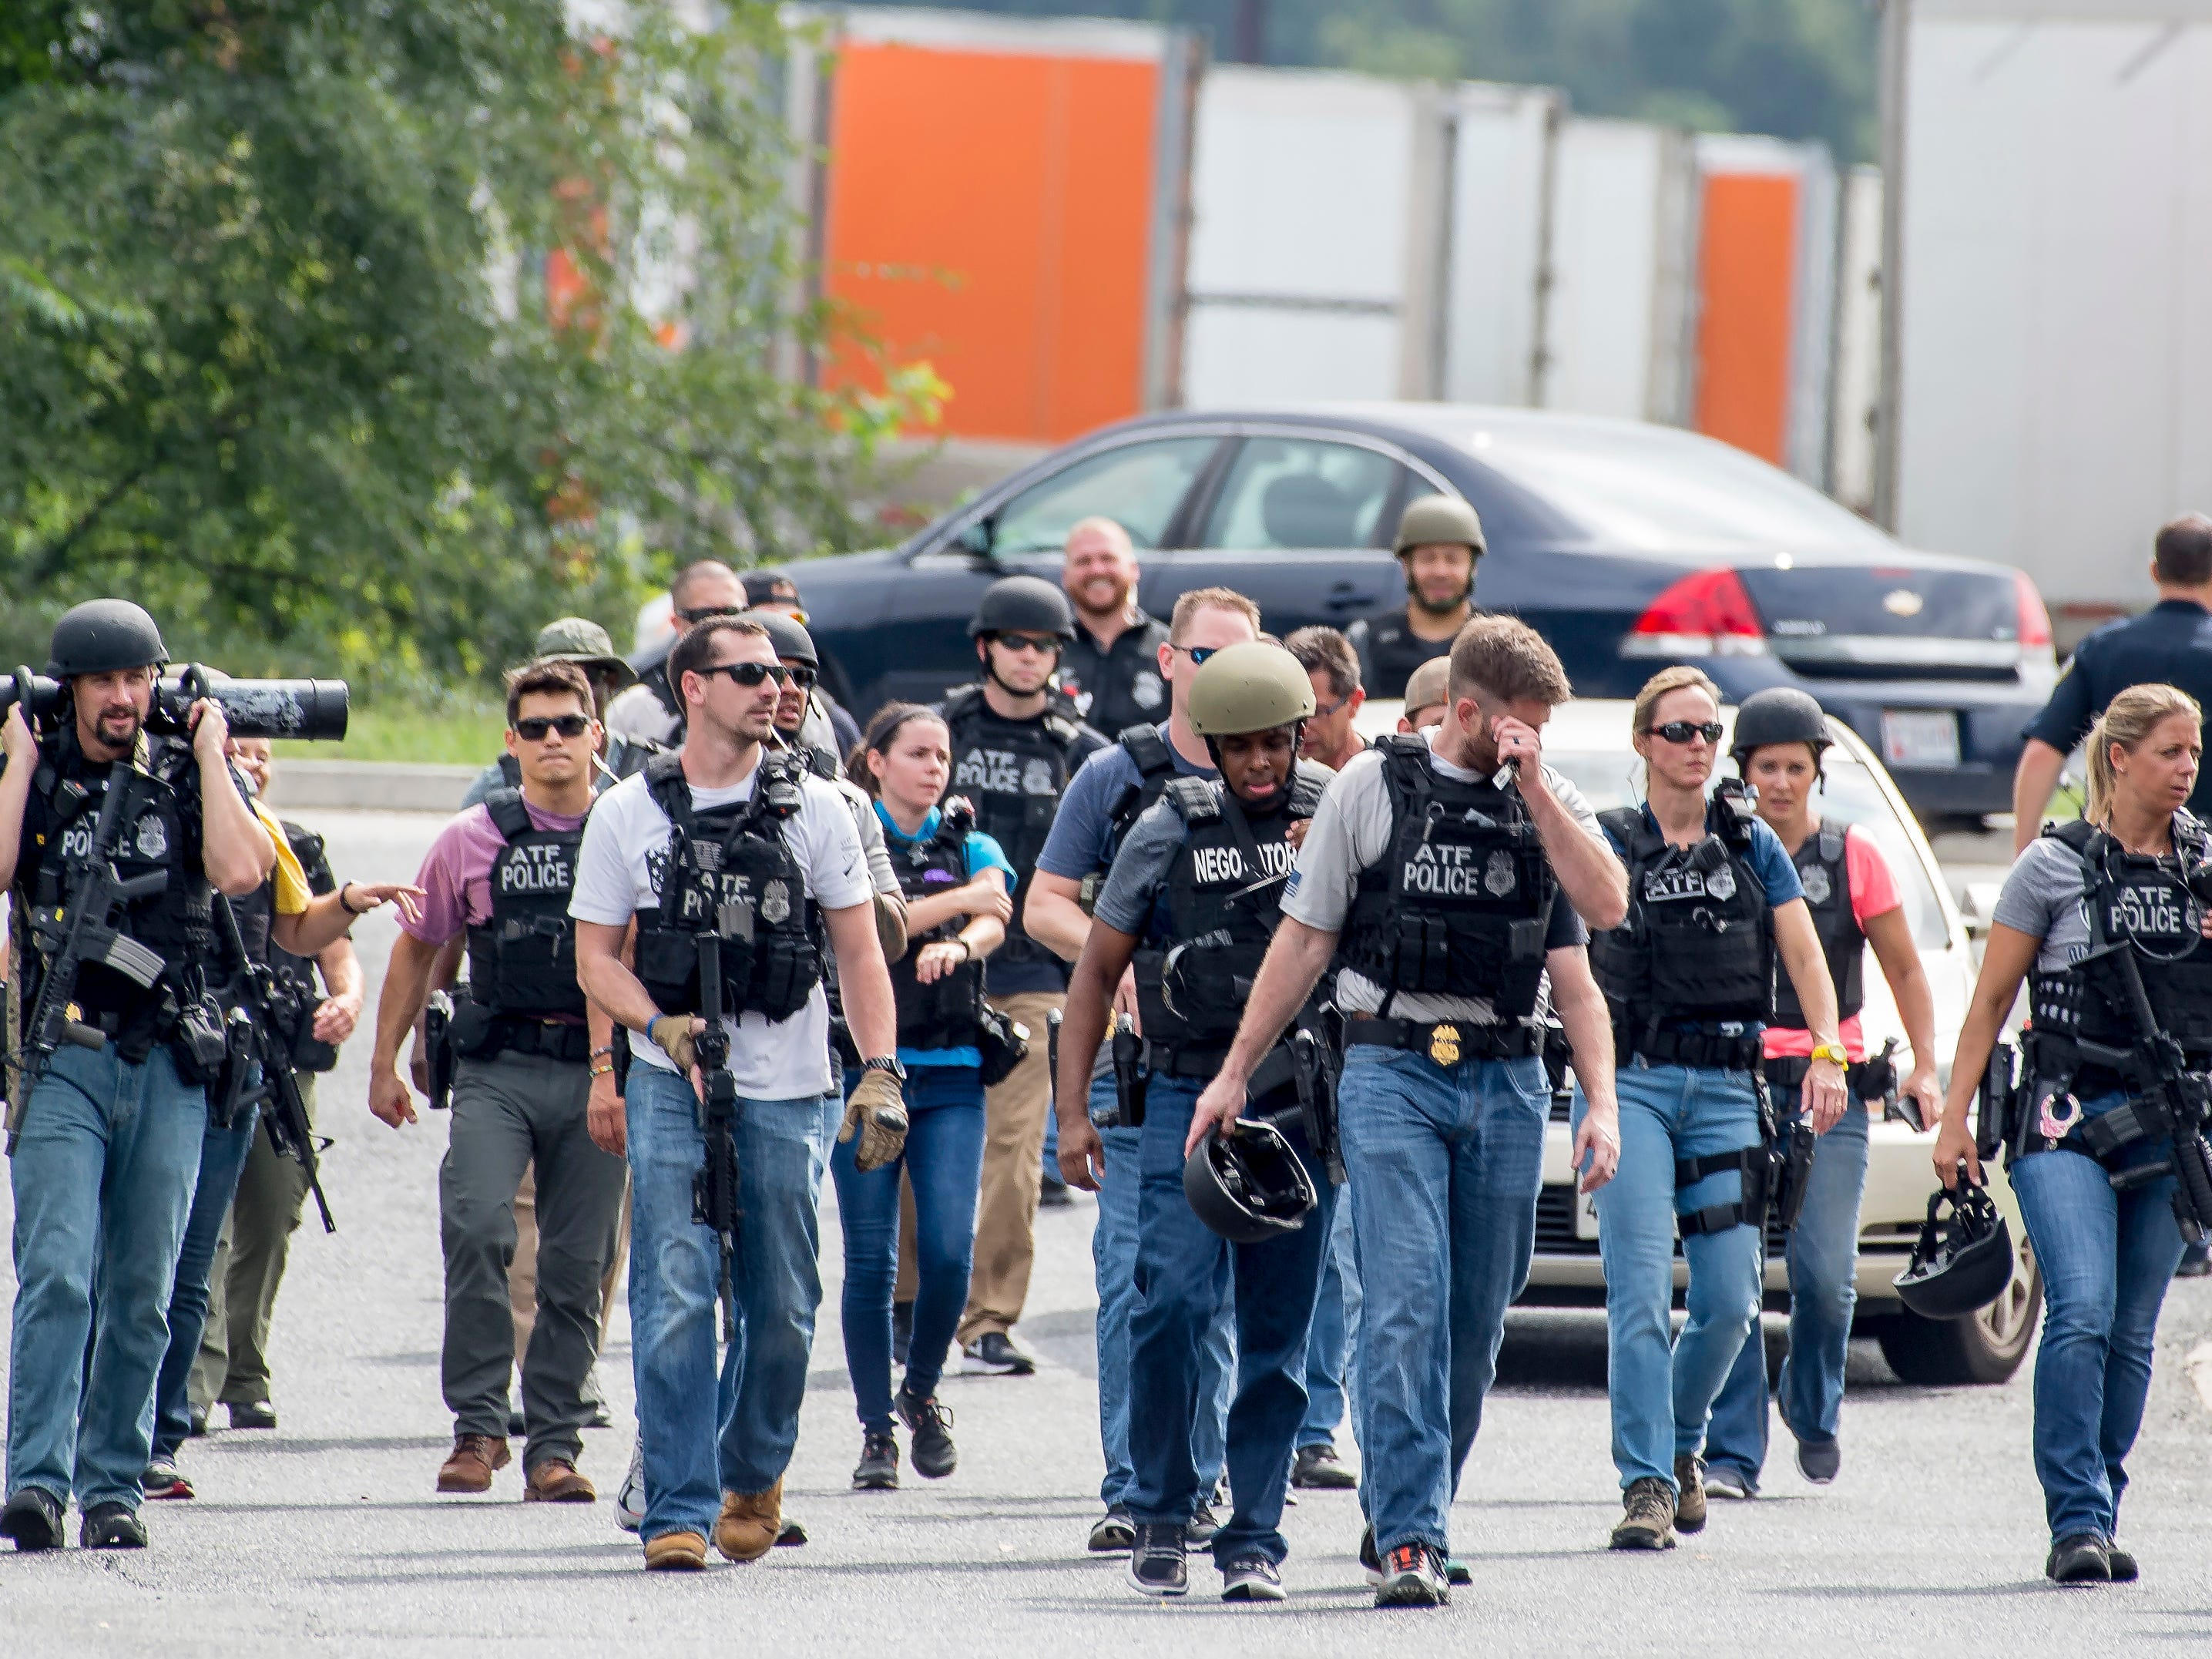 Numerous Bureau of Alcohol, Tobacco, Firearms and Explosives (ATF) agents on patrol after clearning an area near a warehouse as police search for a gunman who fled the scene of a shooting at a Rite Aid Distribution Center in Aberdeen, Md, Sept, 20, 2018. Media reports indicate numerous casualties in the shooting.